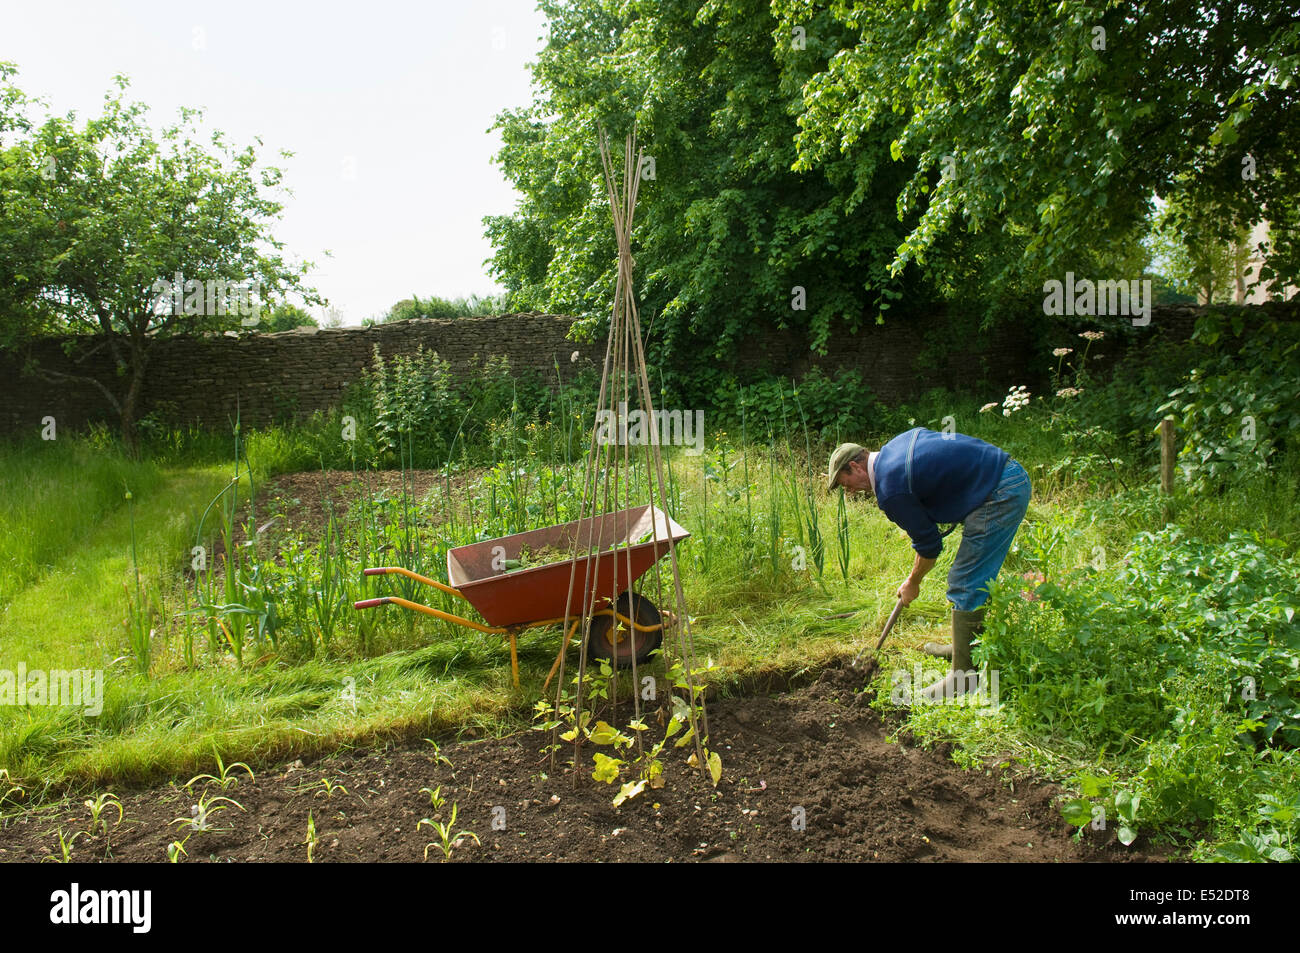 A man digging his vegetable garden, and planting young plants. - Stock Image